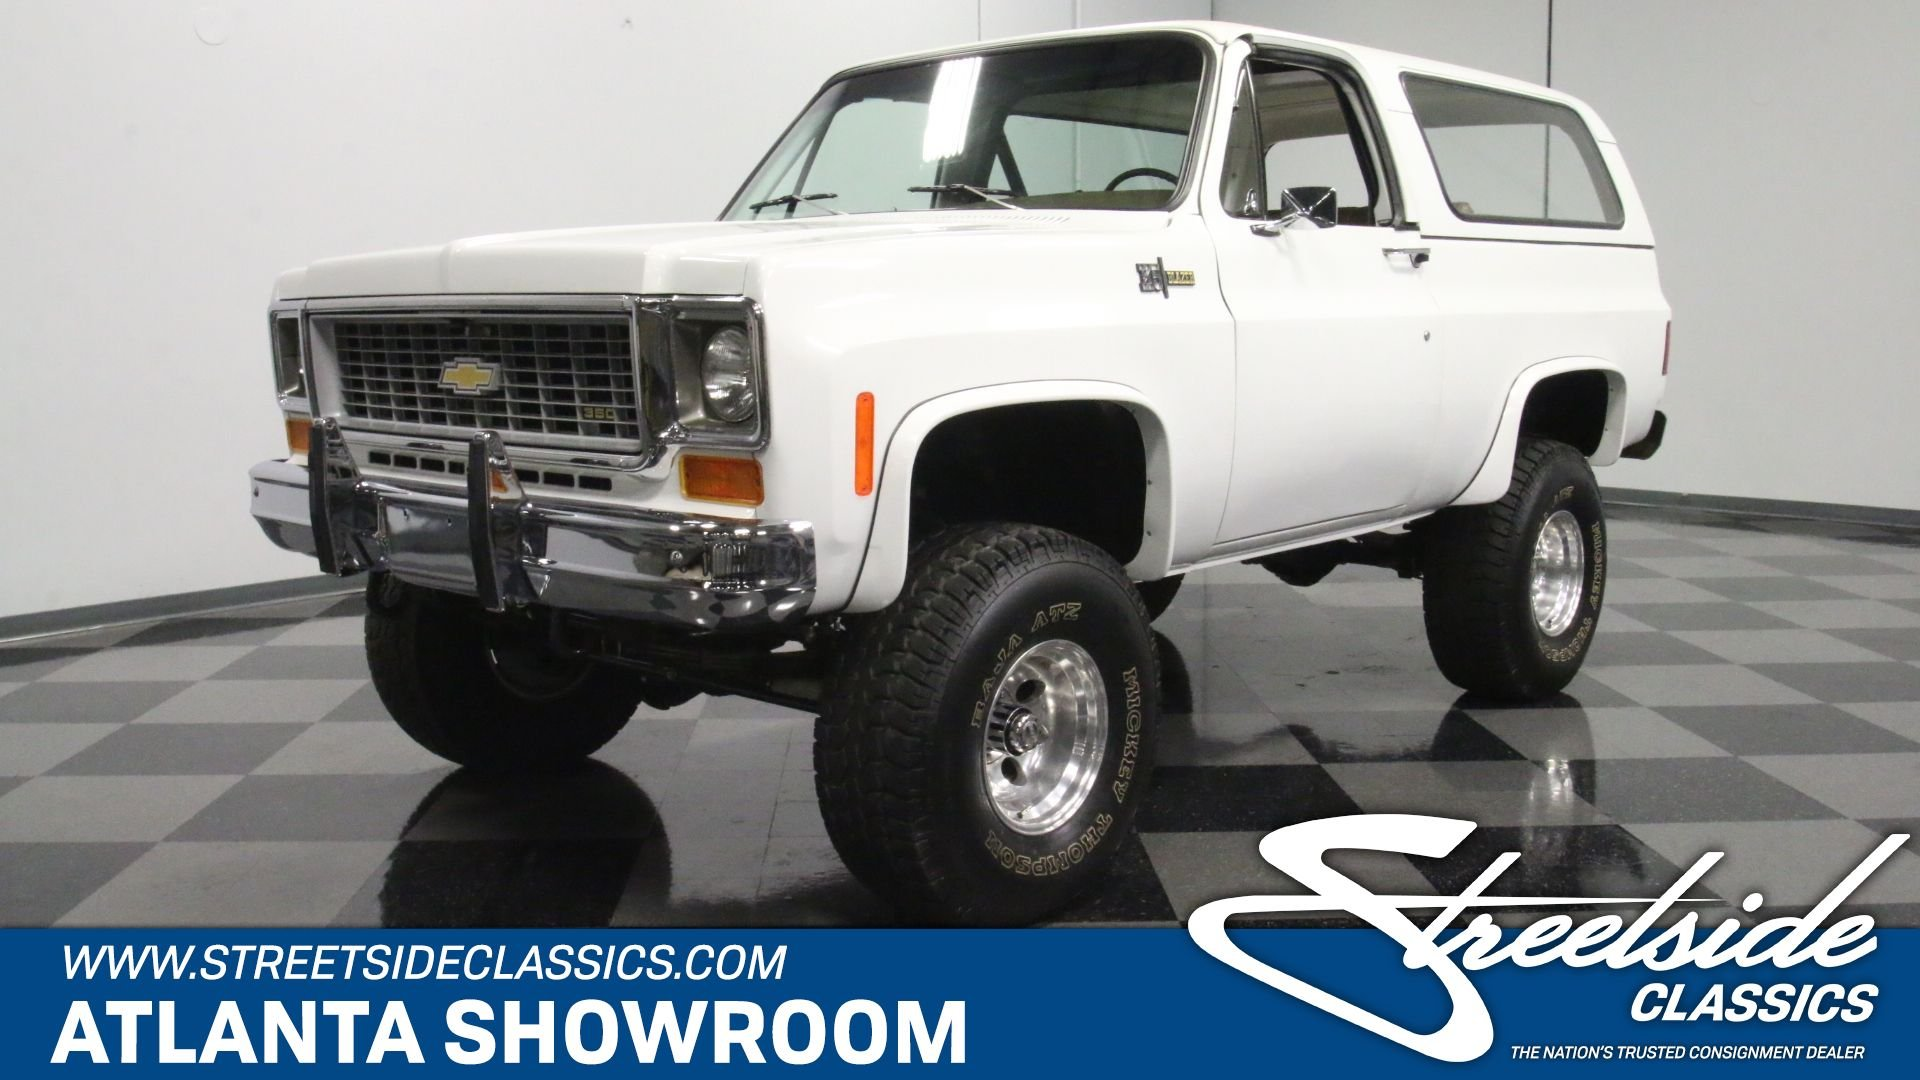 1974 Chevrolet Blazer Classic Cars For Sale Streetside Classics The Nation S 1 Consignment Dealer